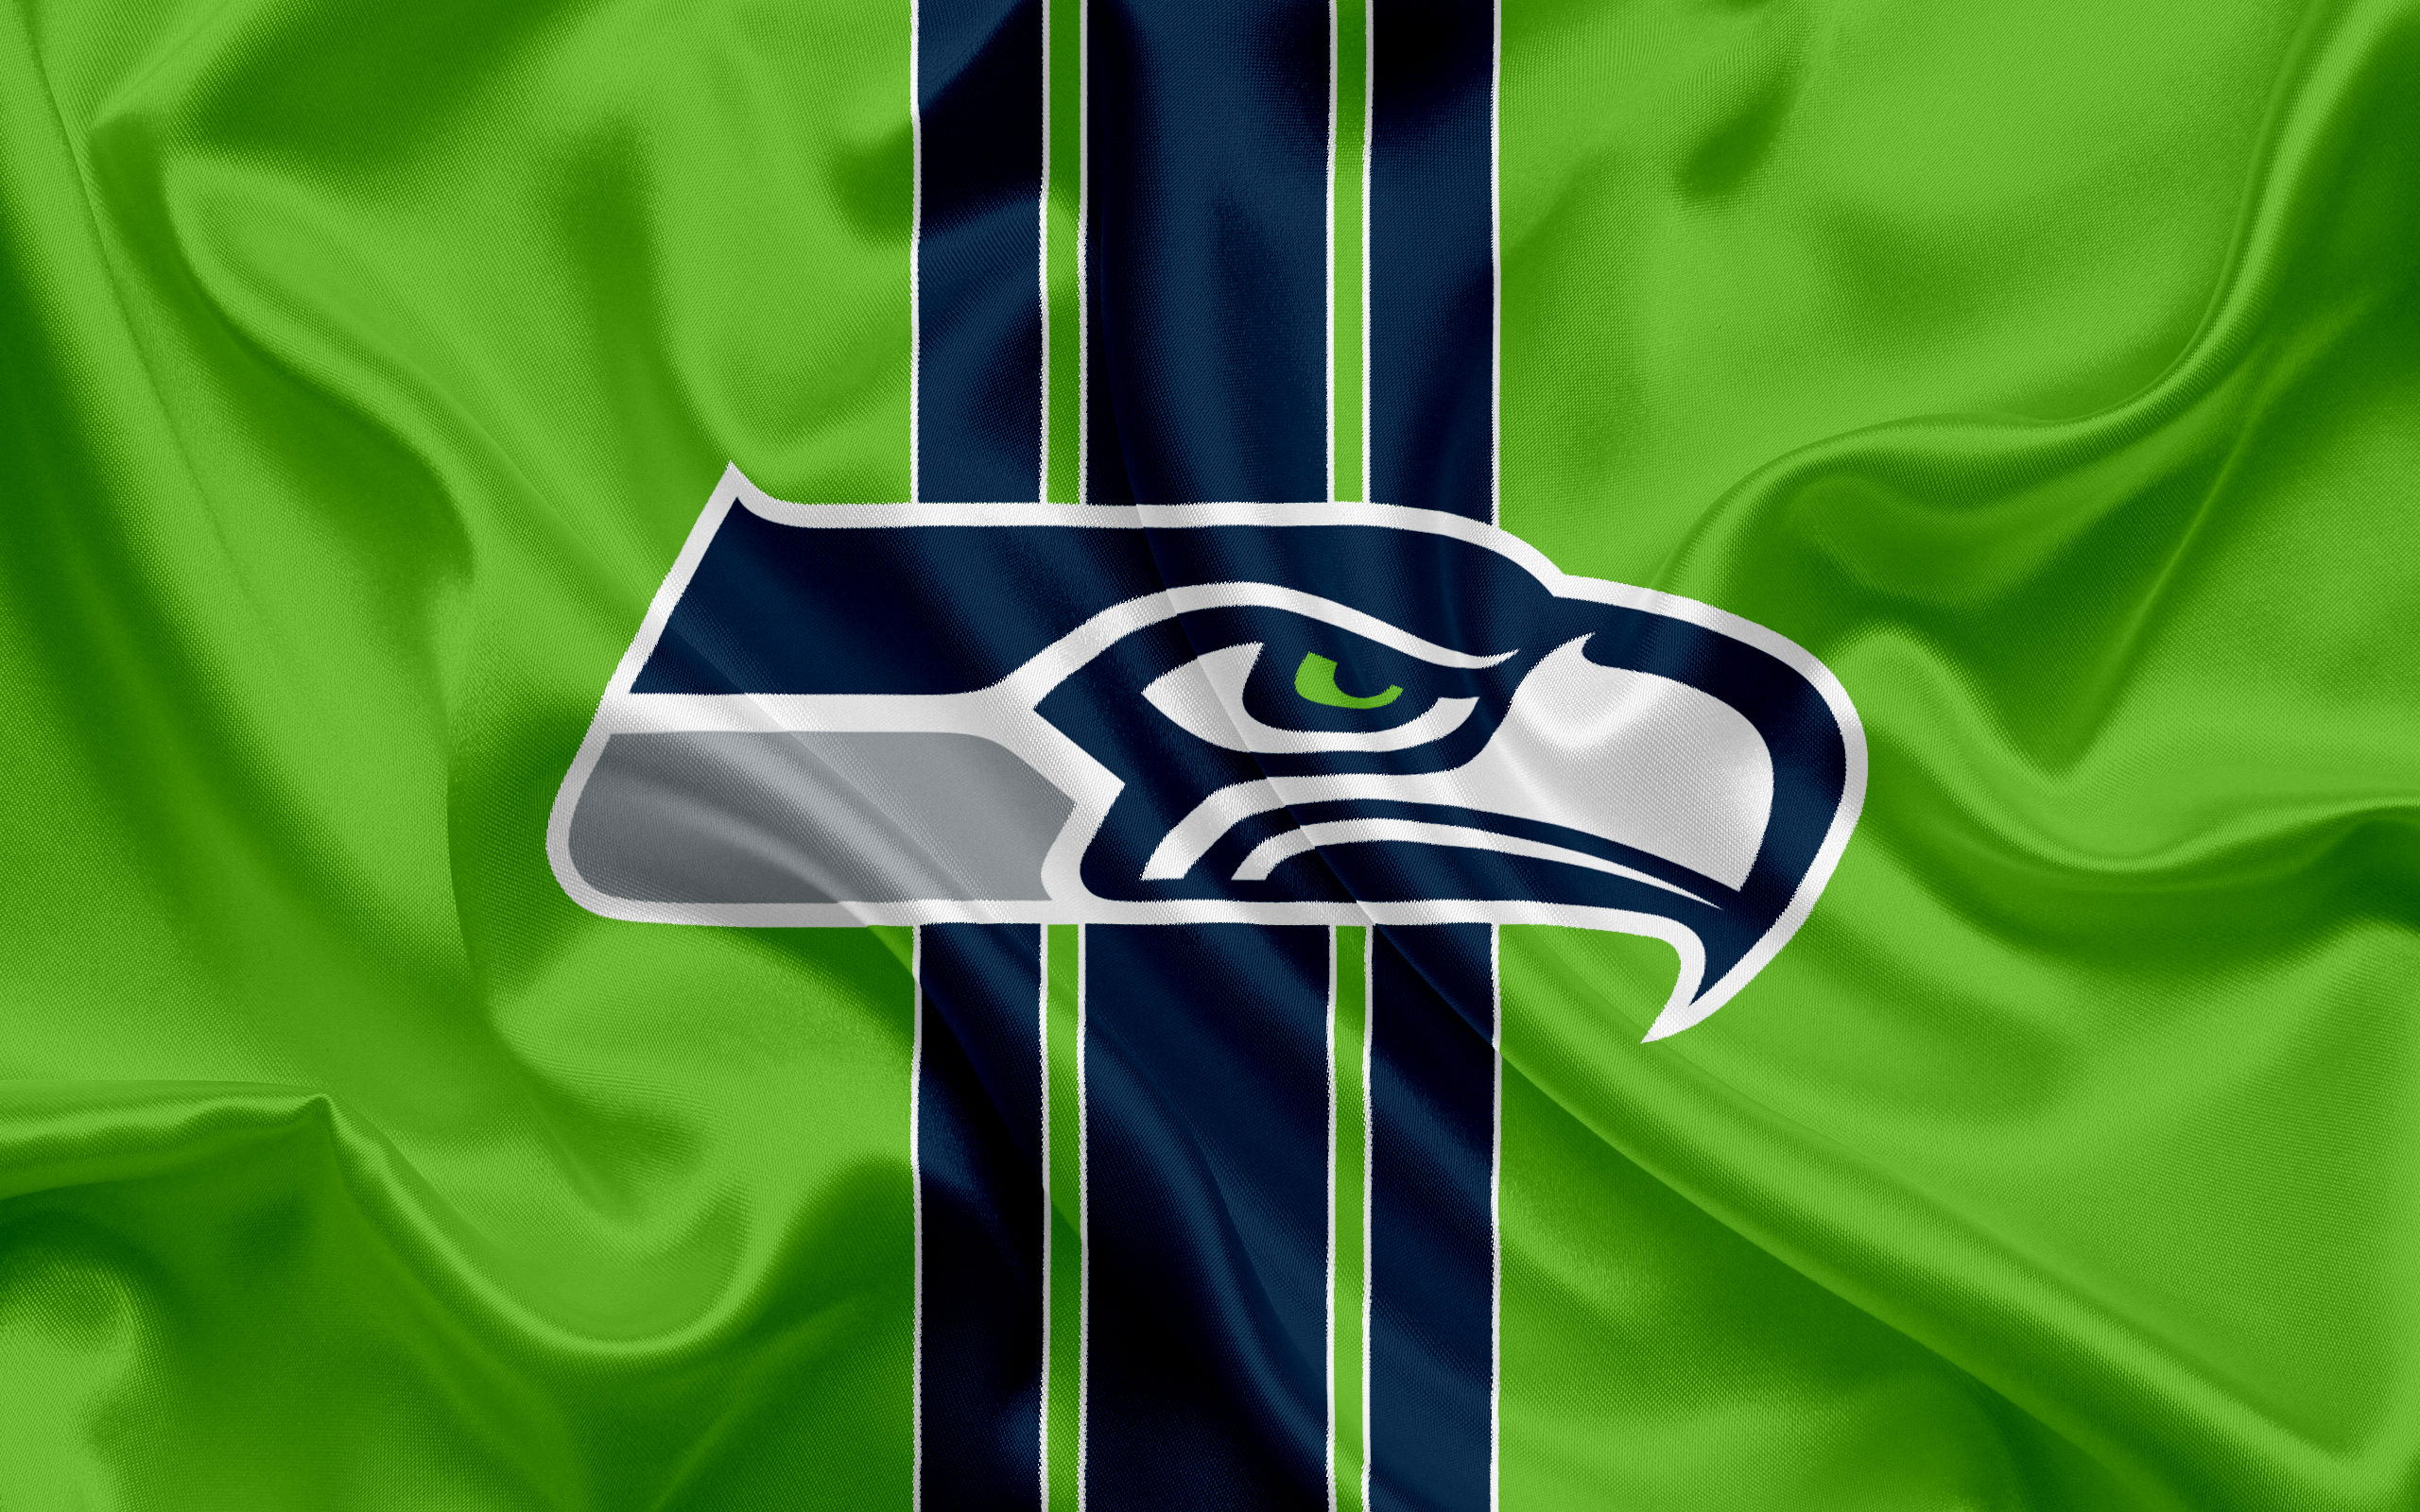 Seahawks Iphone Background Posted By Ryan Anderson